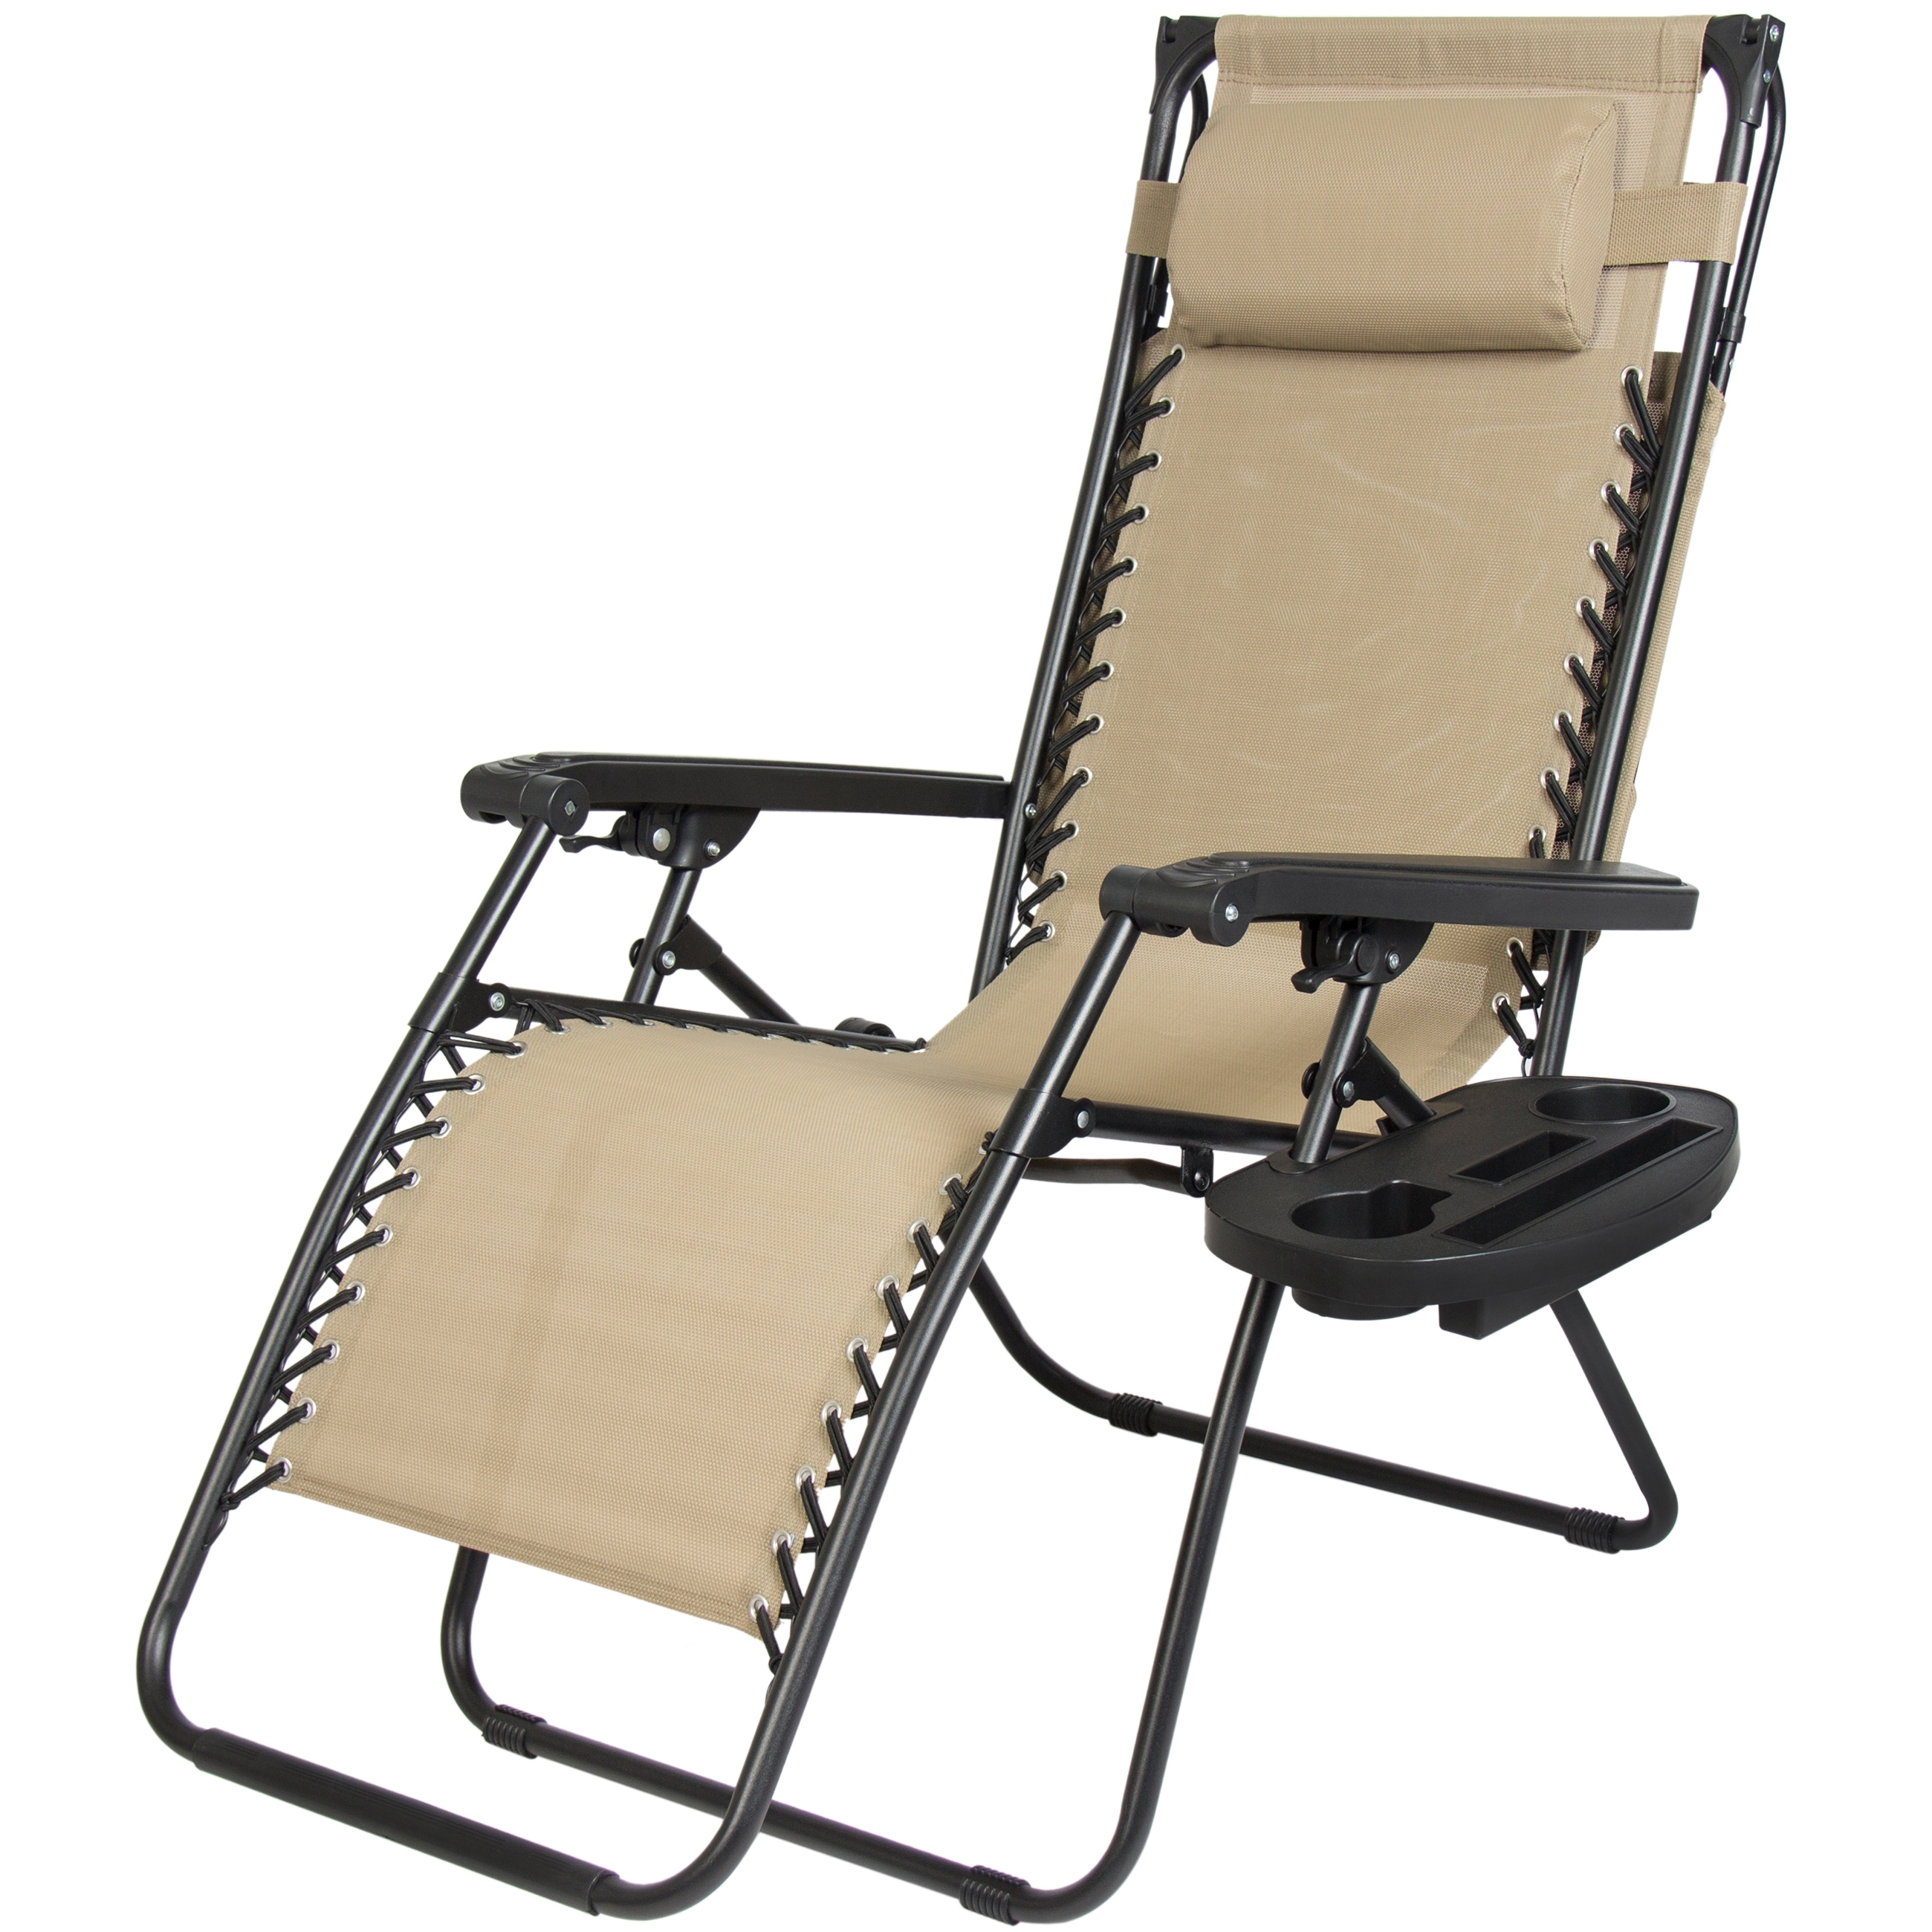 Lounge Chair : Outdoor Lounge Chairs With Wheels Patio Furniture Throughout Preferred Folding Chaise Lounge Chairs For Outdoor (View 9 of 15)